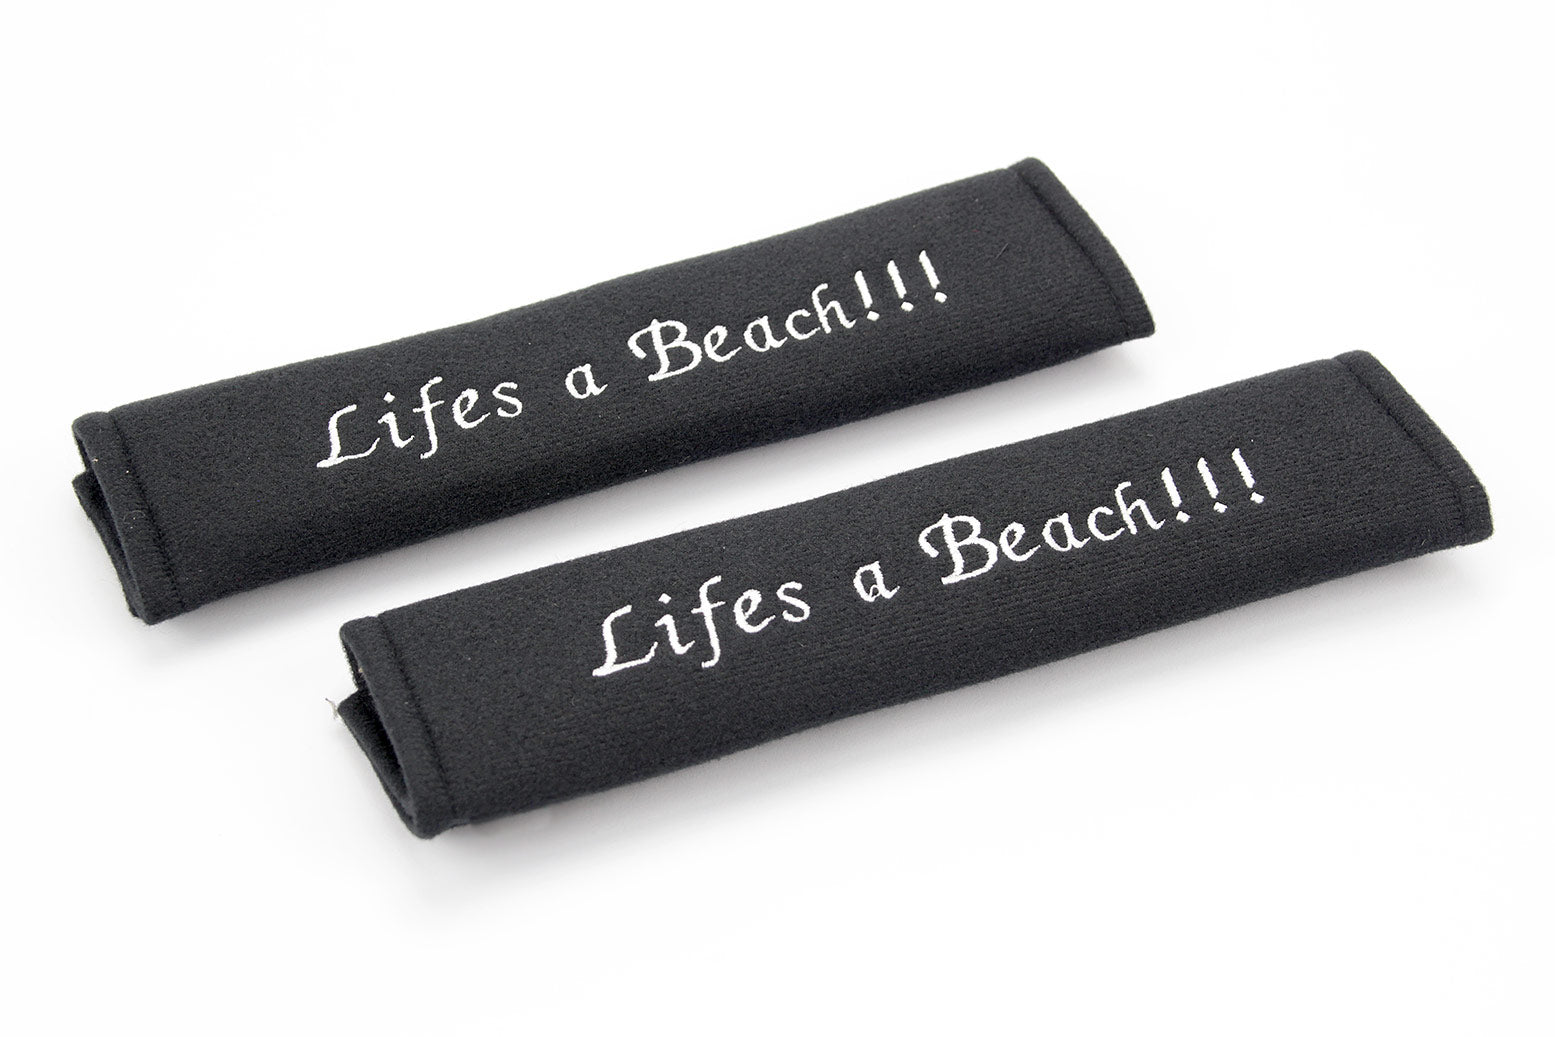 Embroidered padded seat belt cover with lifes a beach logo